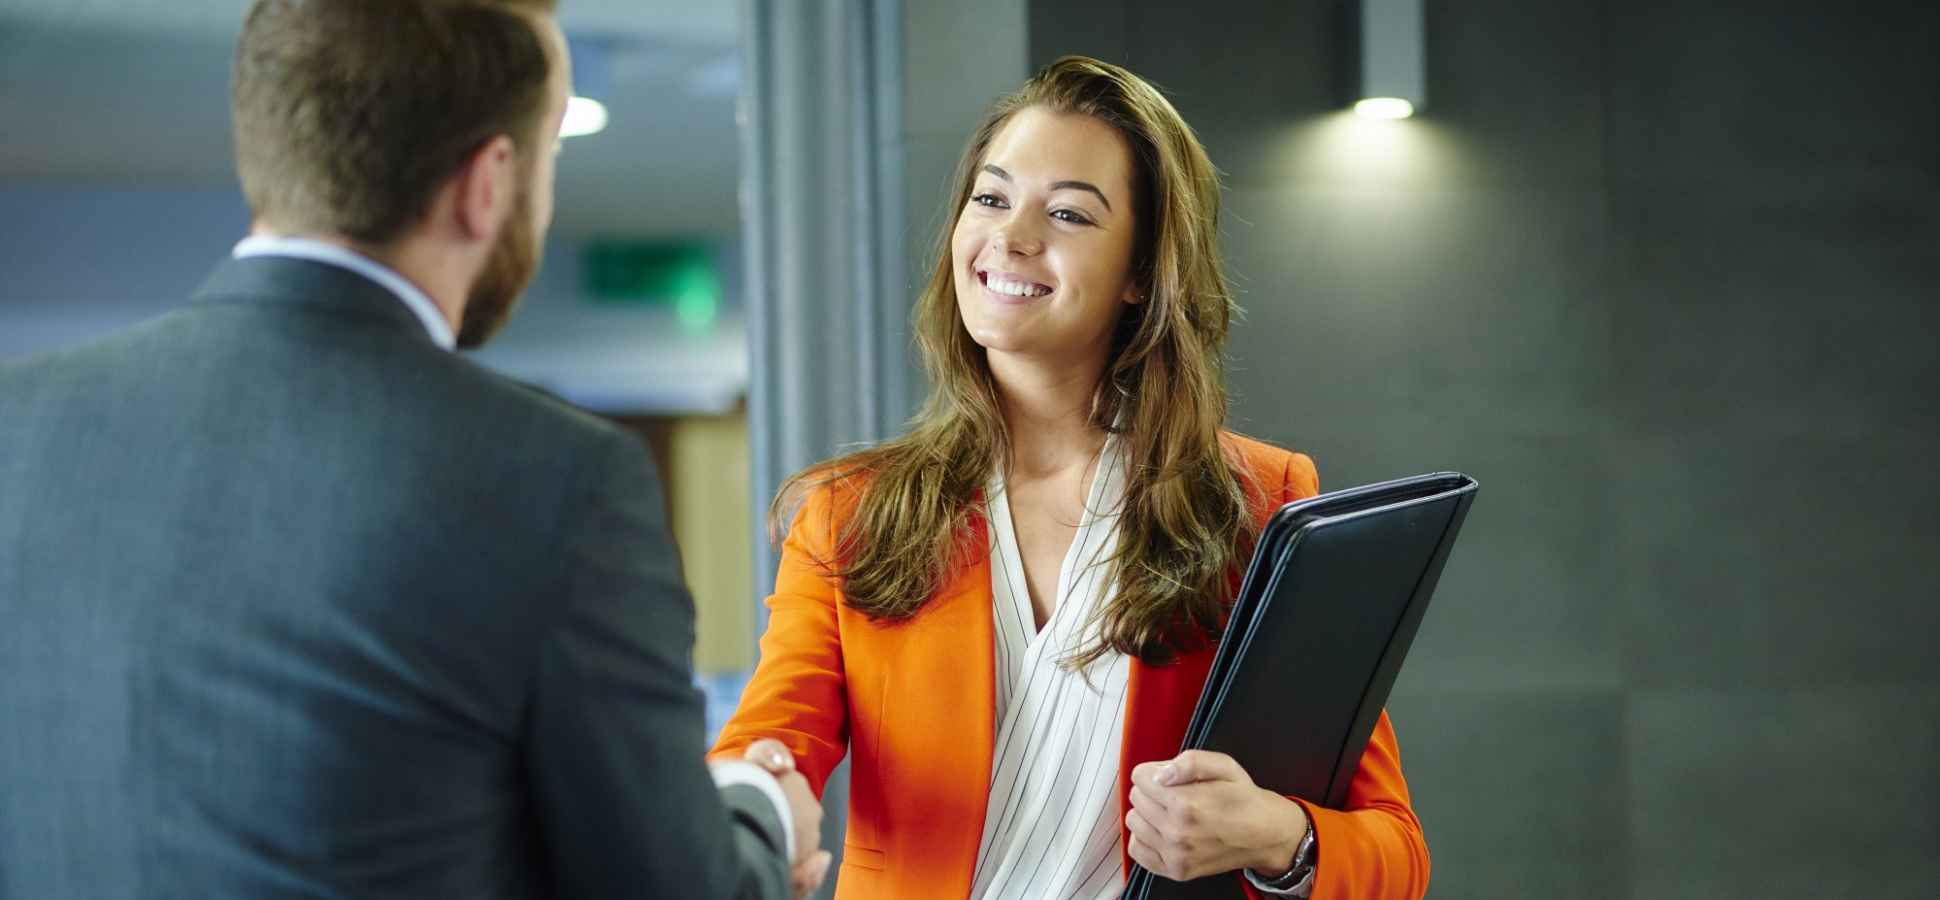 3 Ways to Establish Rapport Instantly